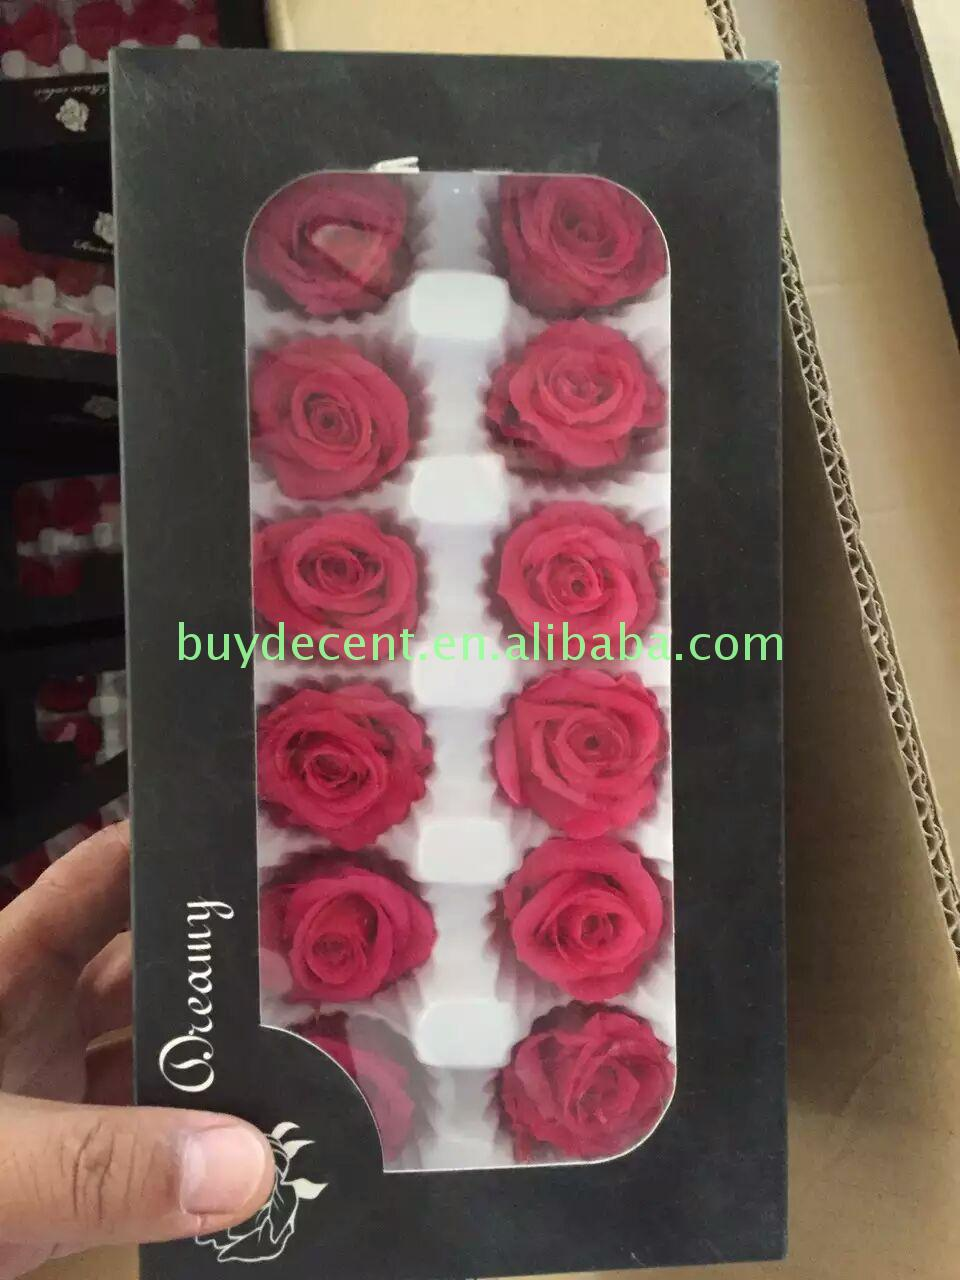 Premium quality luxury China decorative preserved roses eternal cheap price wedding decoration flower wholesaler